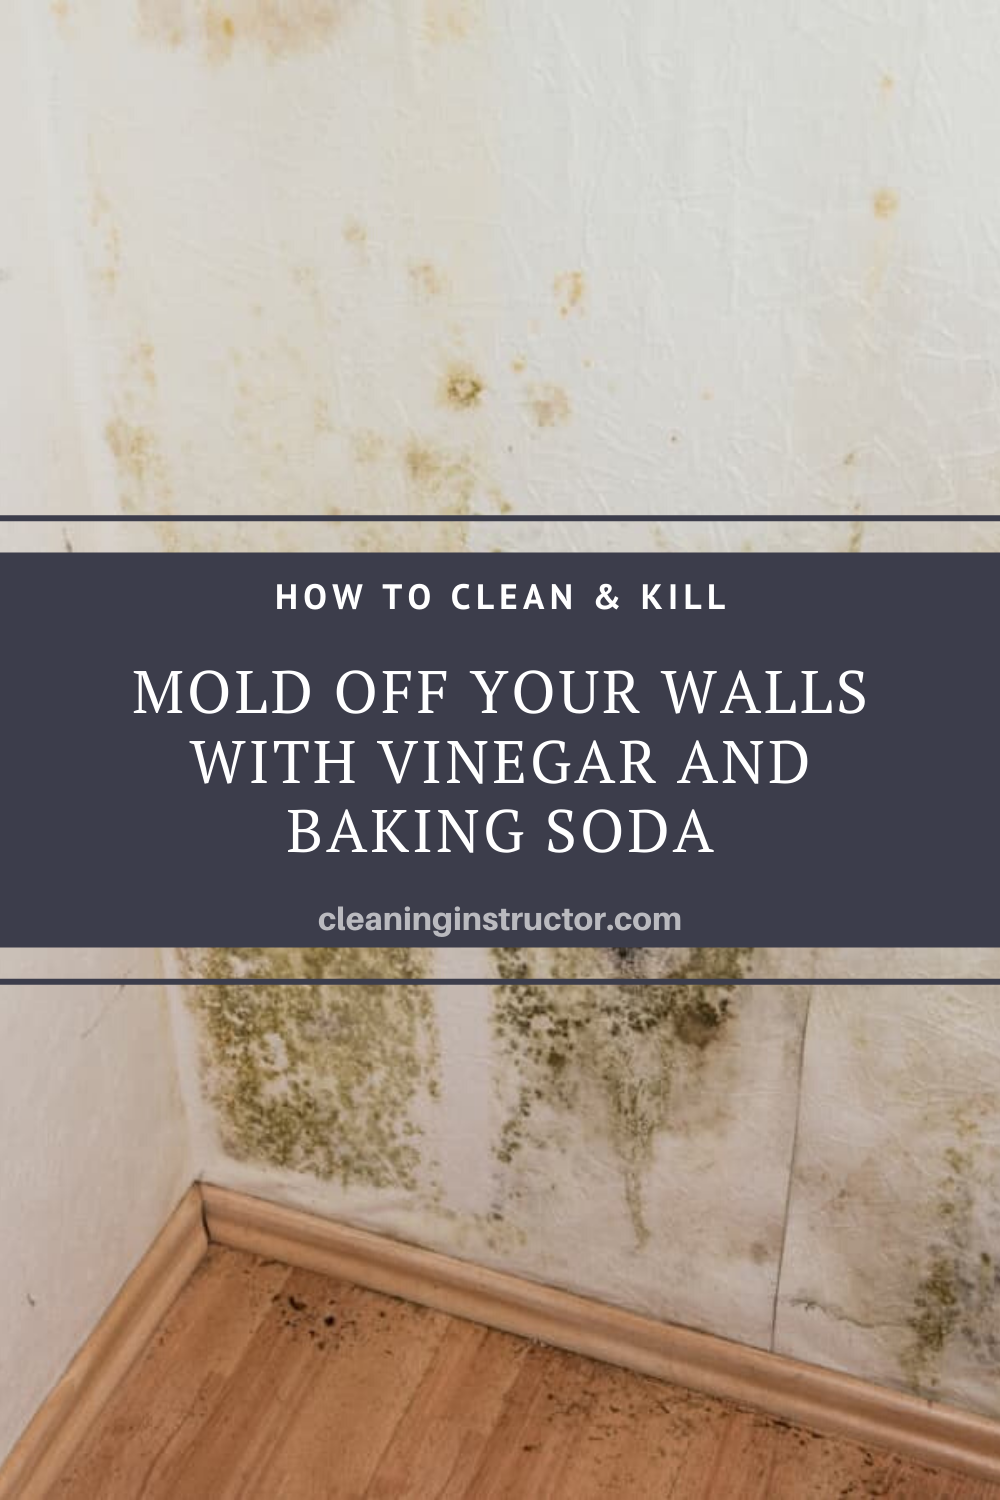 How To Clean Kill Mold Off Your Walls With Vinegar And Baking Soda Baking Soda Cleaning Clean Black Mold